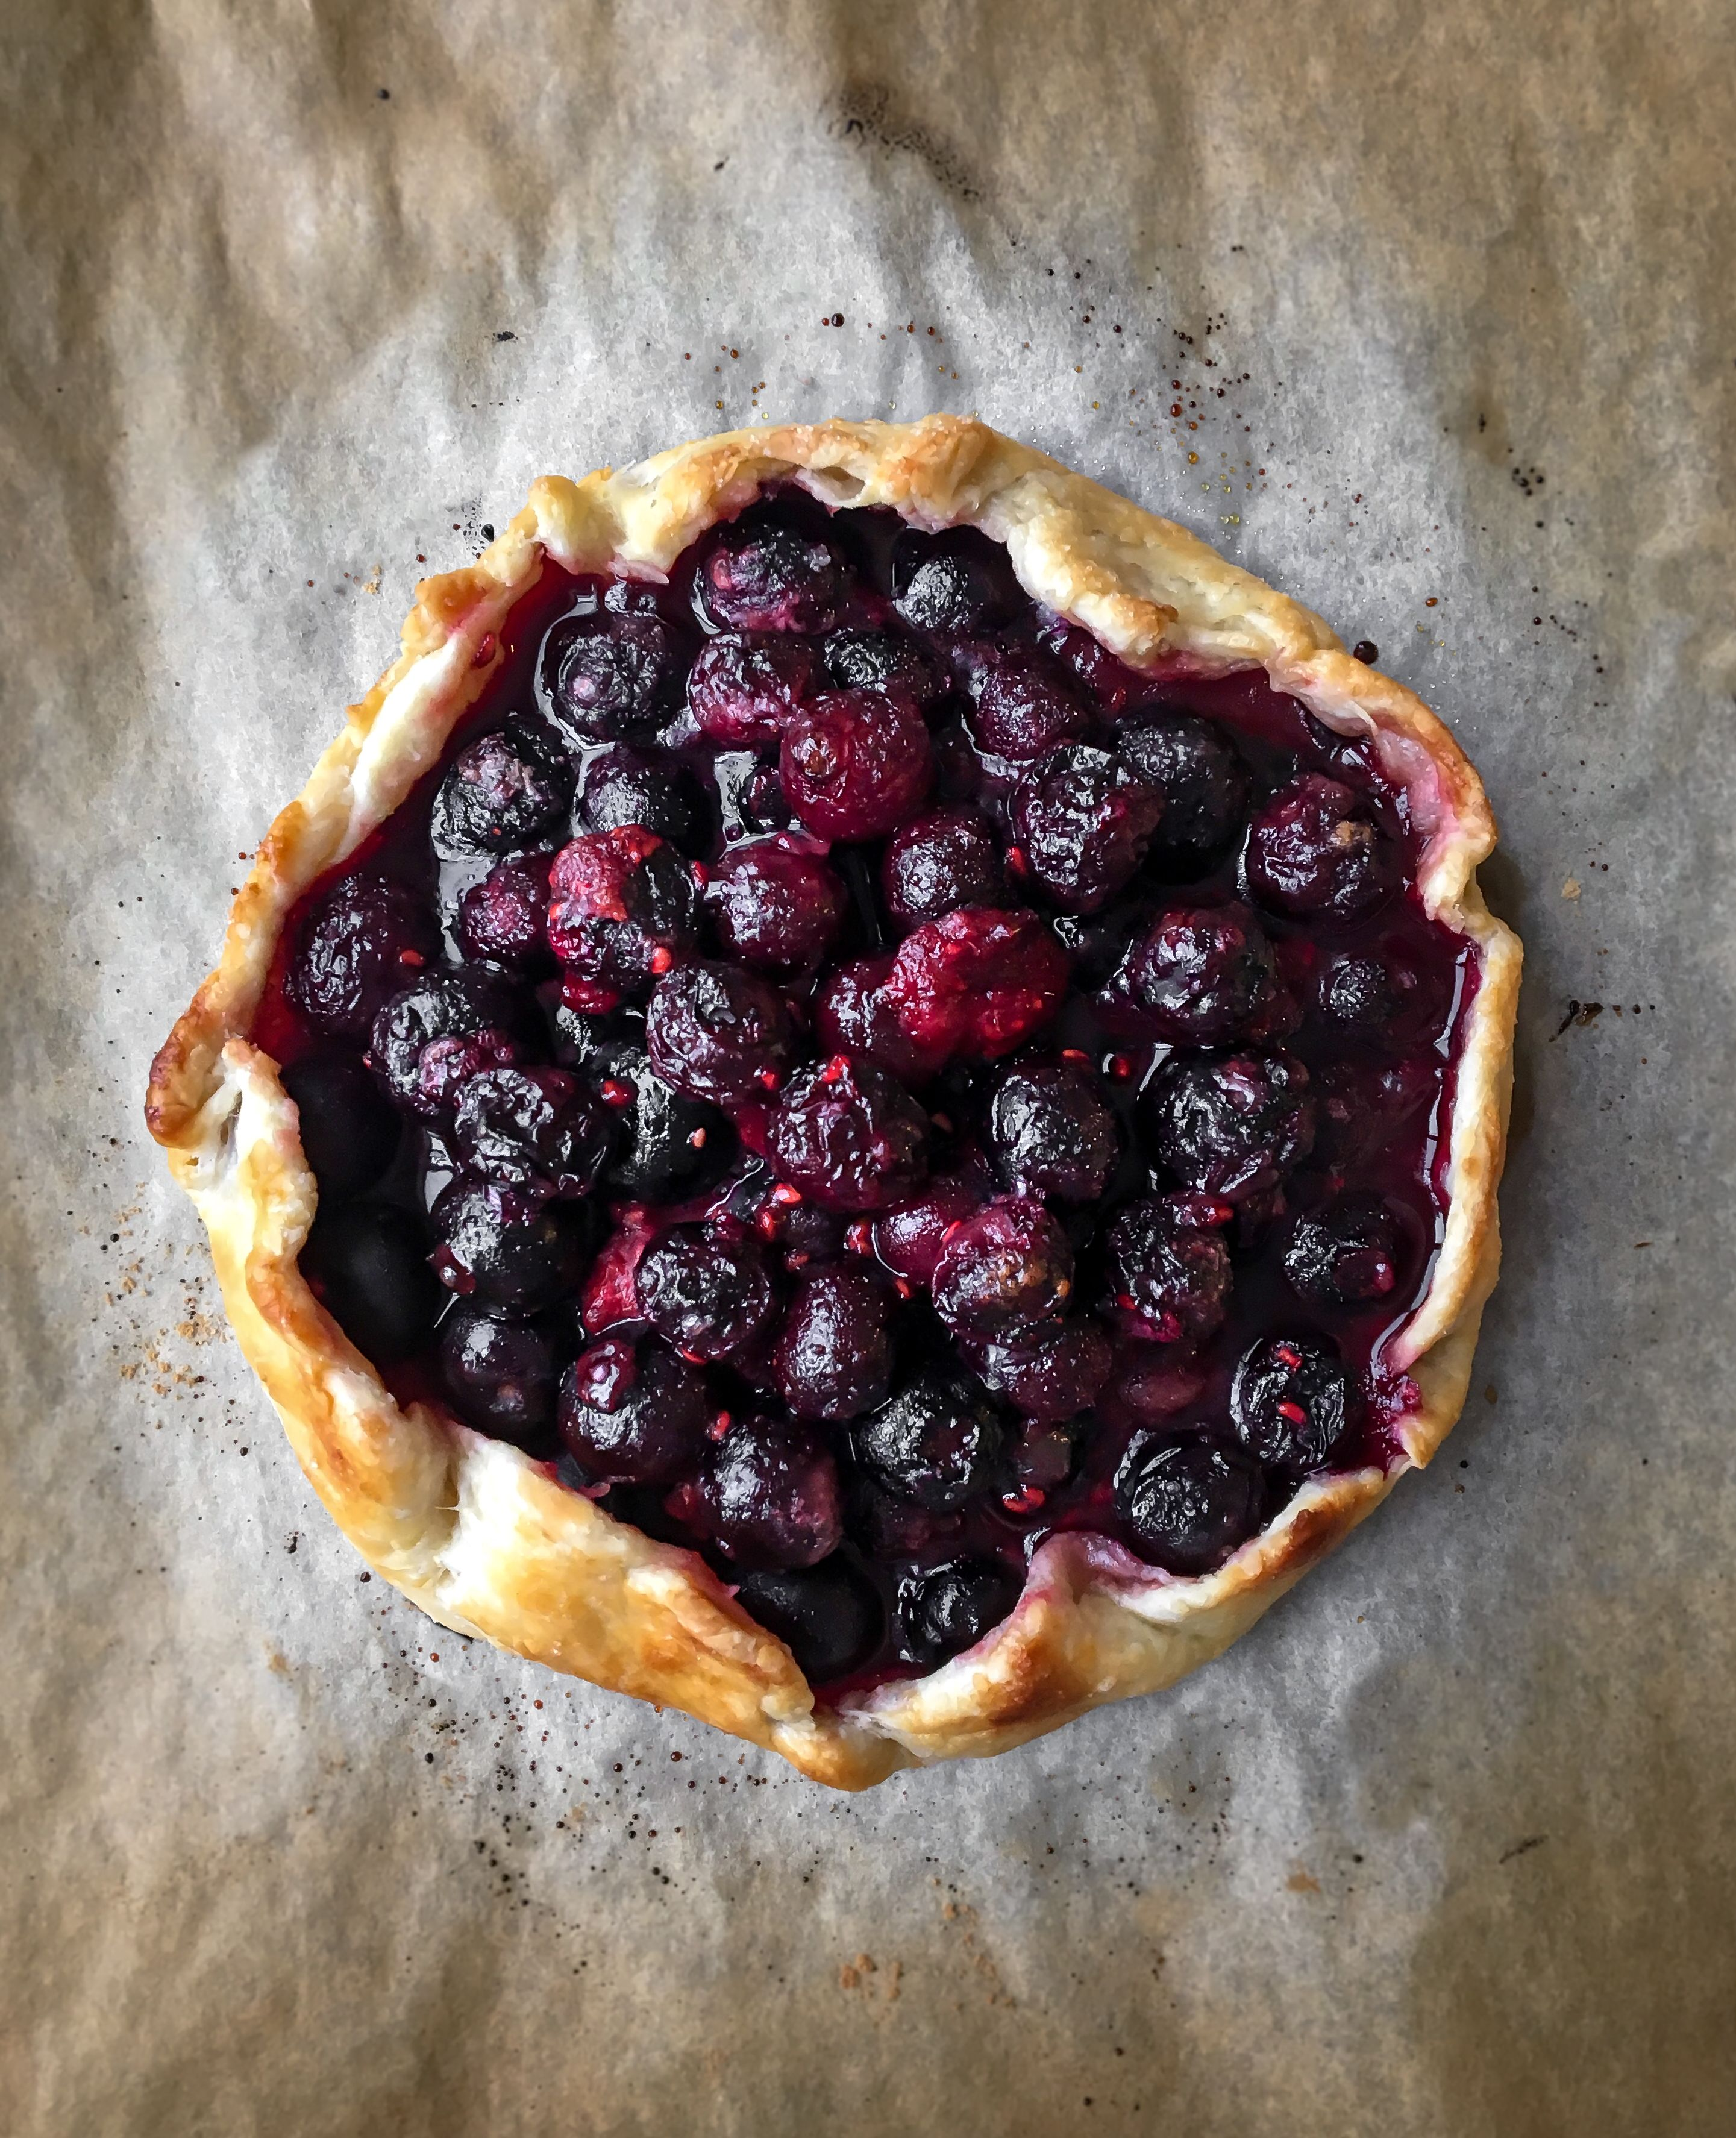 Blueberry and Raspberry Galette